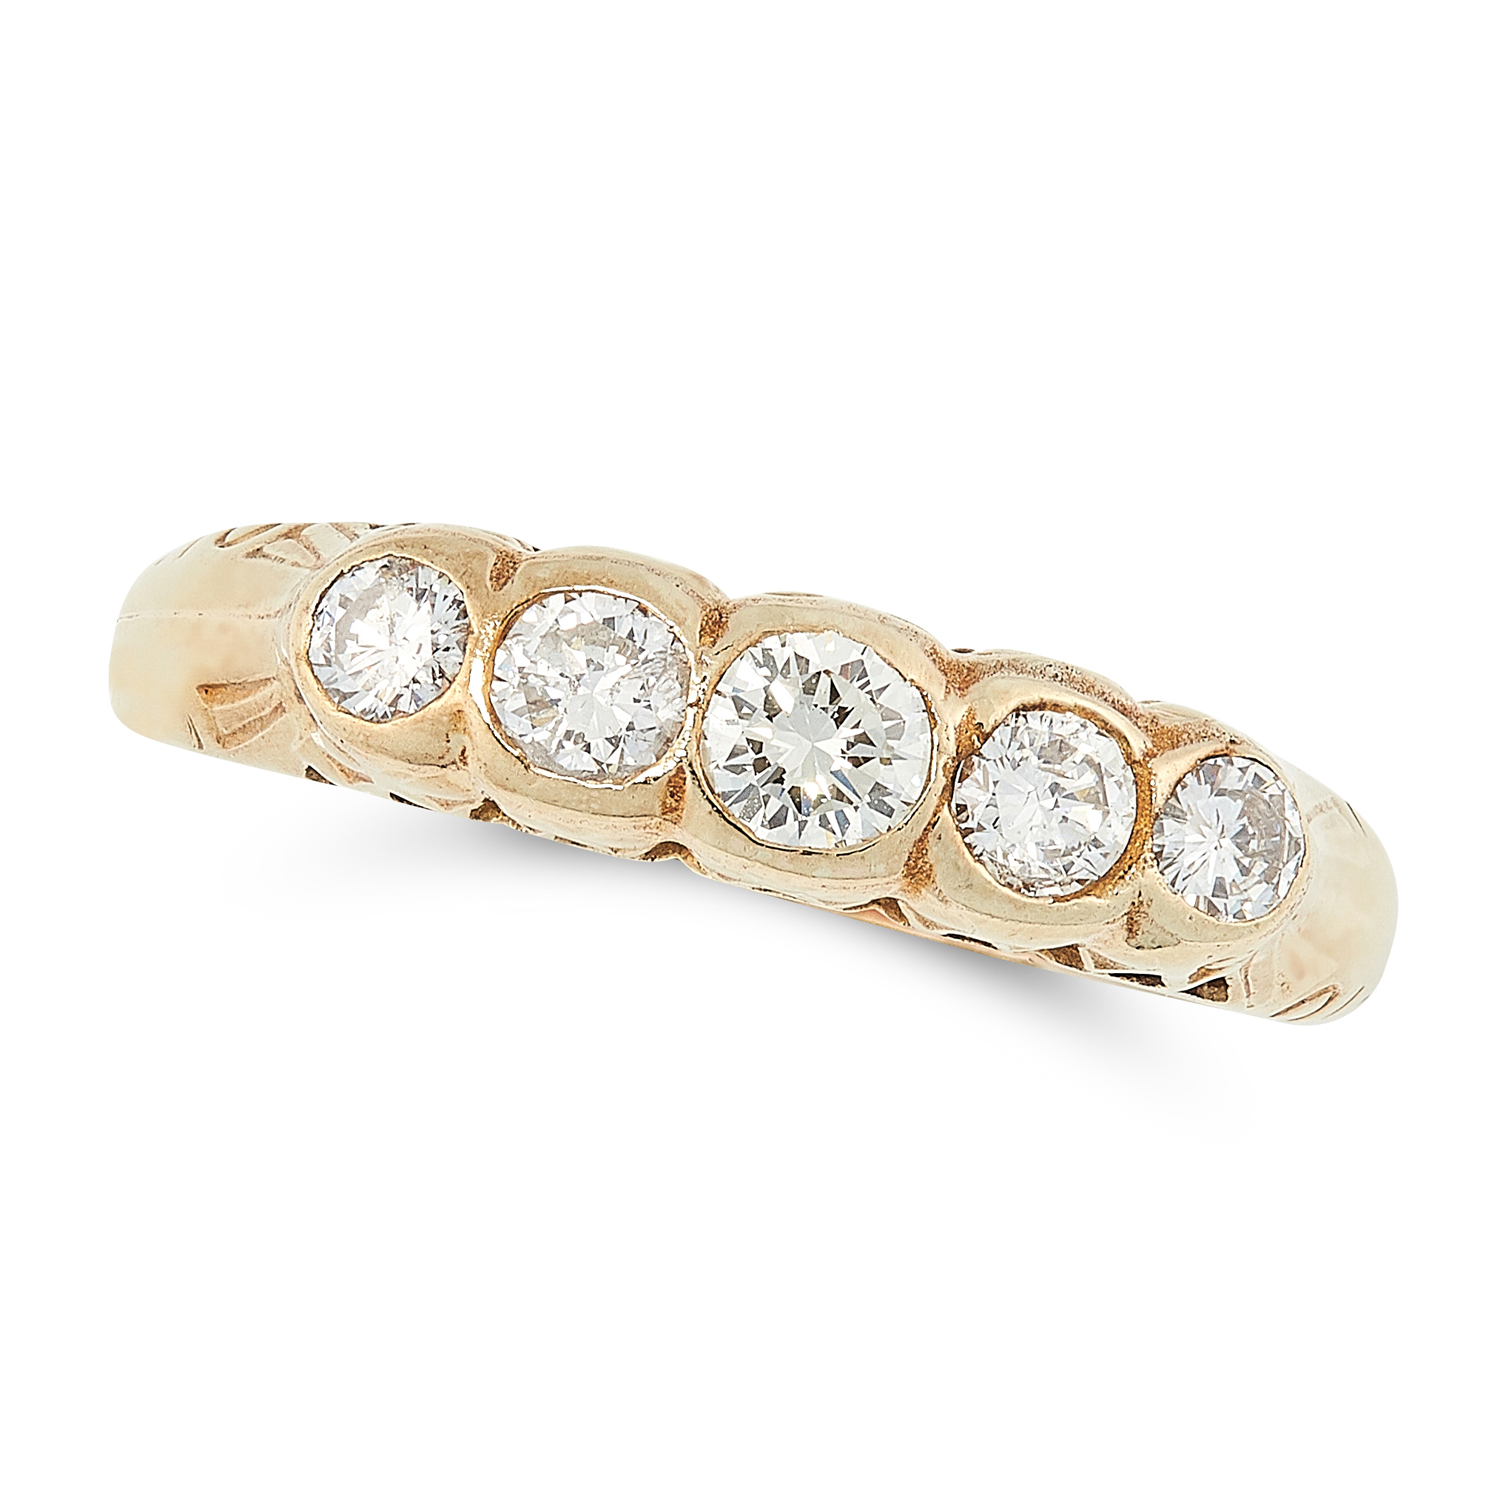 A DIAMOND FIVE STONE RING set with five round cut diamonds totalling 0.30 carats, tests as yellow